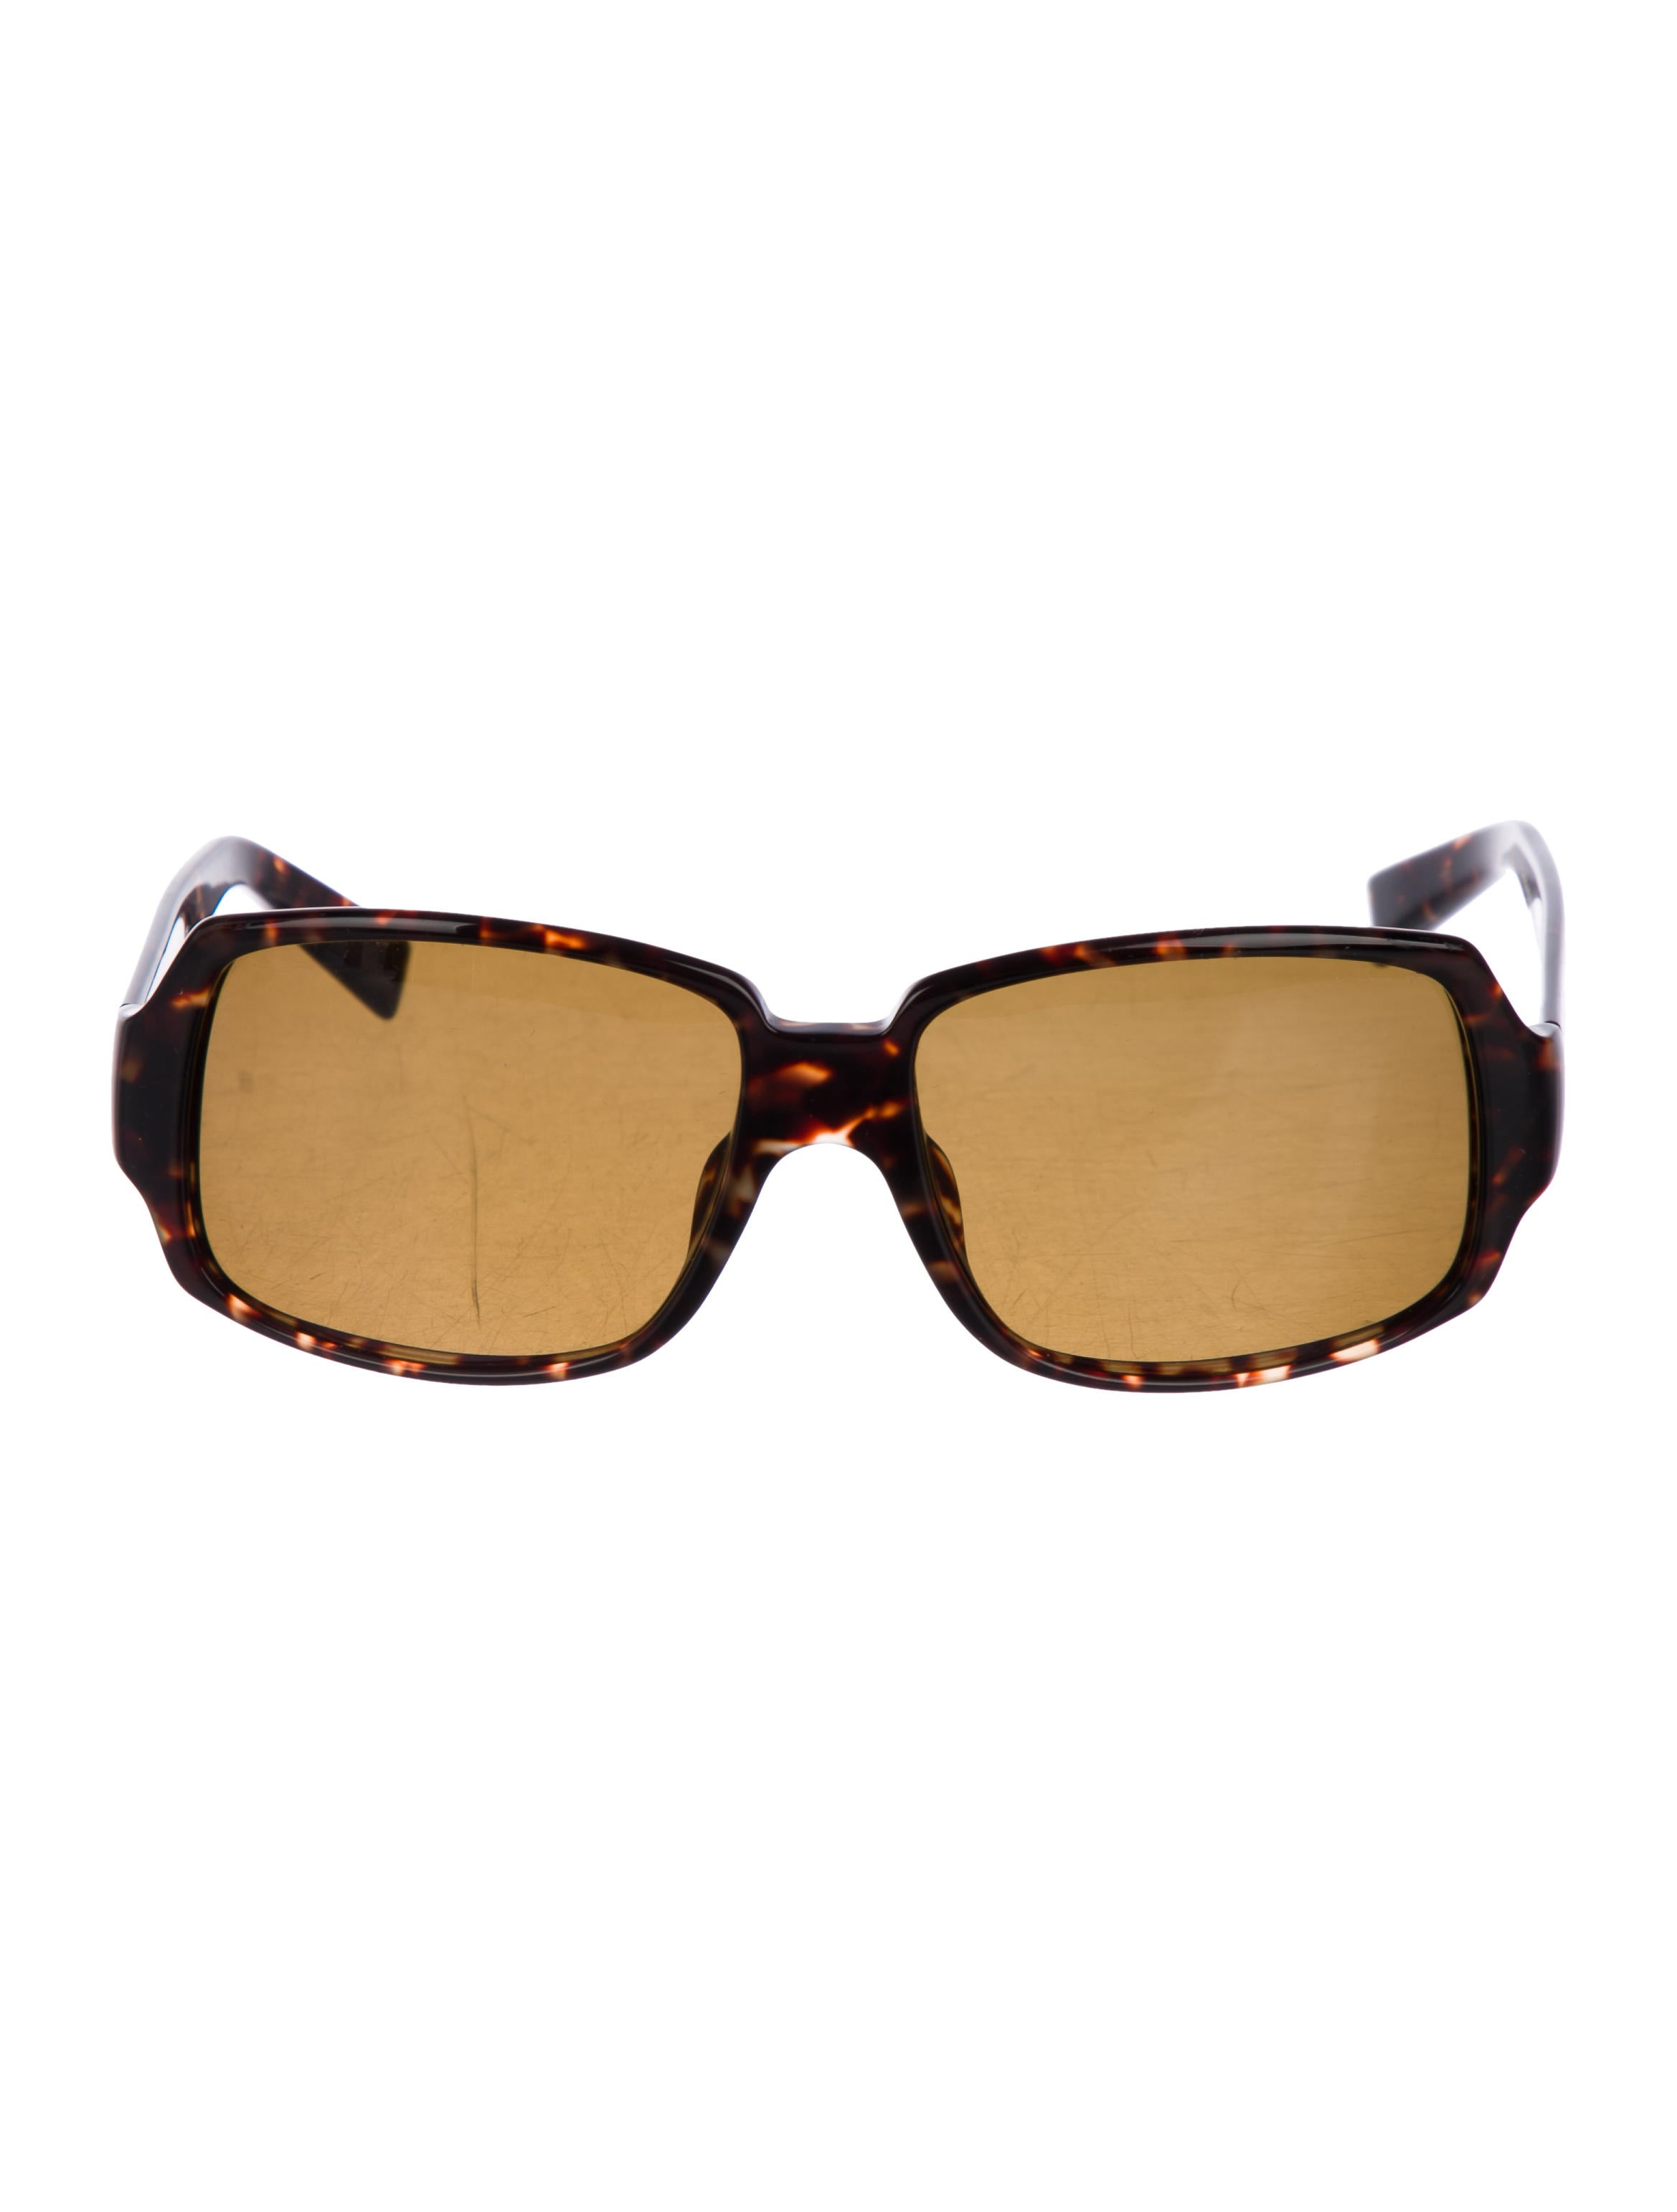 ced2777a812 Louis Vuitton Obsession Carré Sunglasses - Accessories - LOU195921 ...